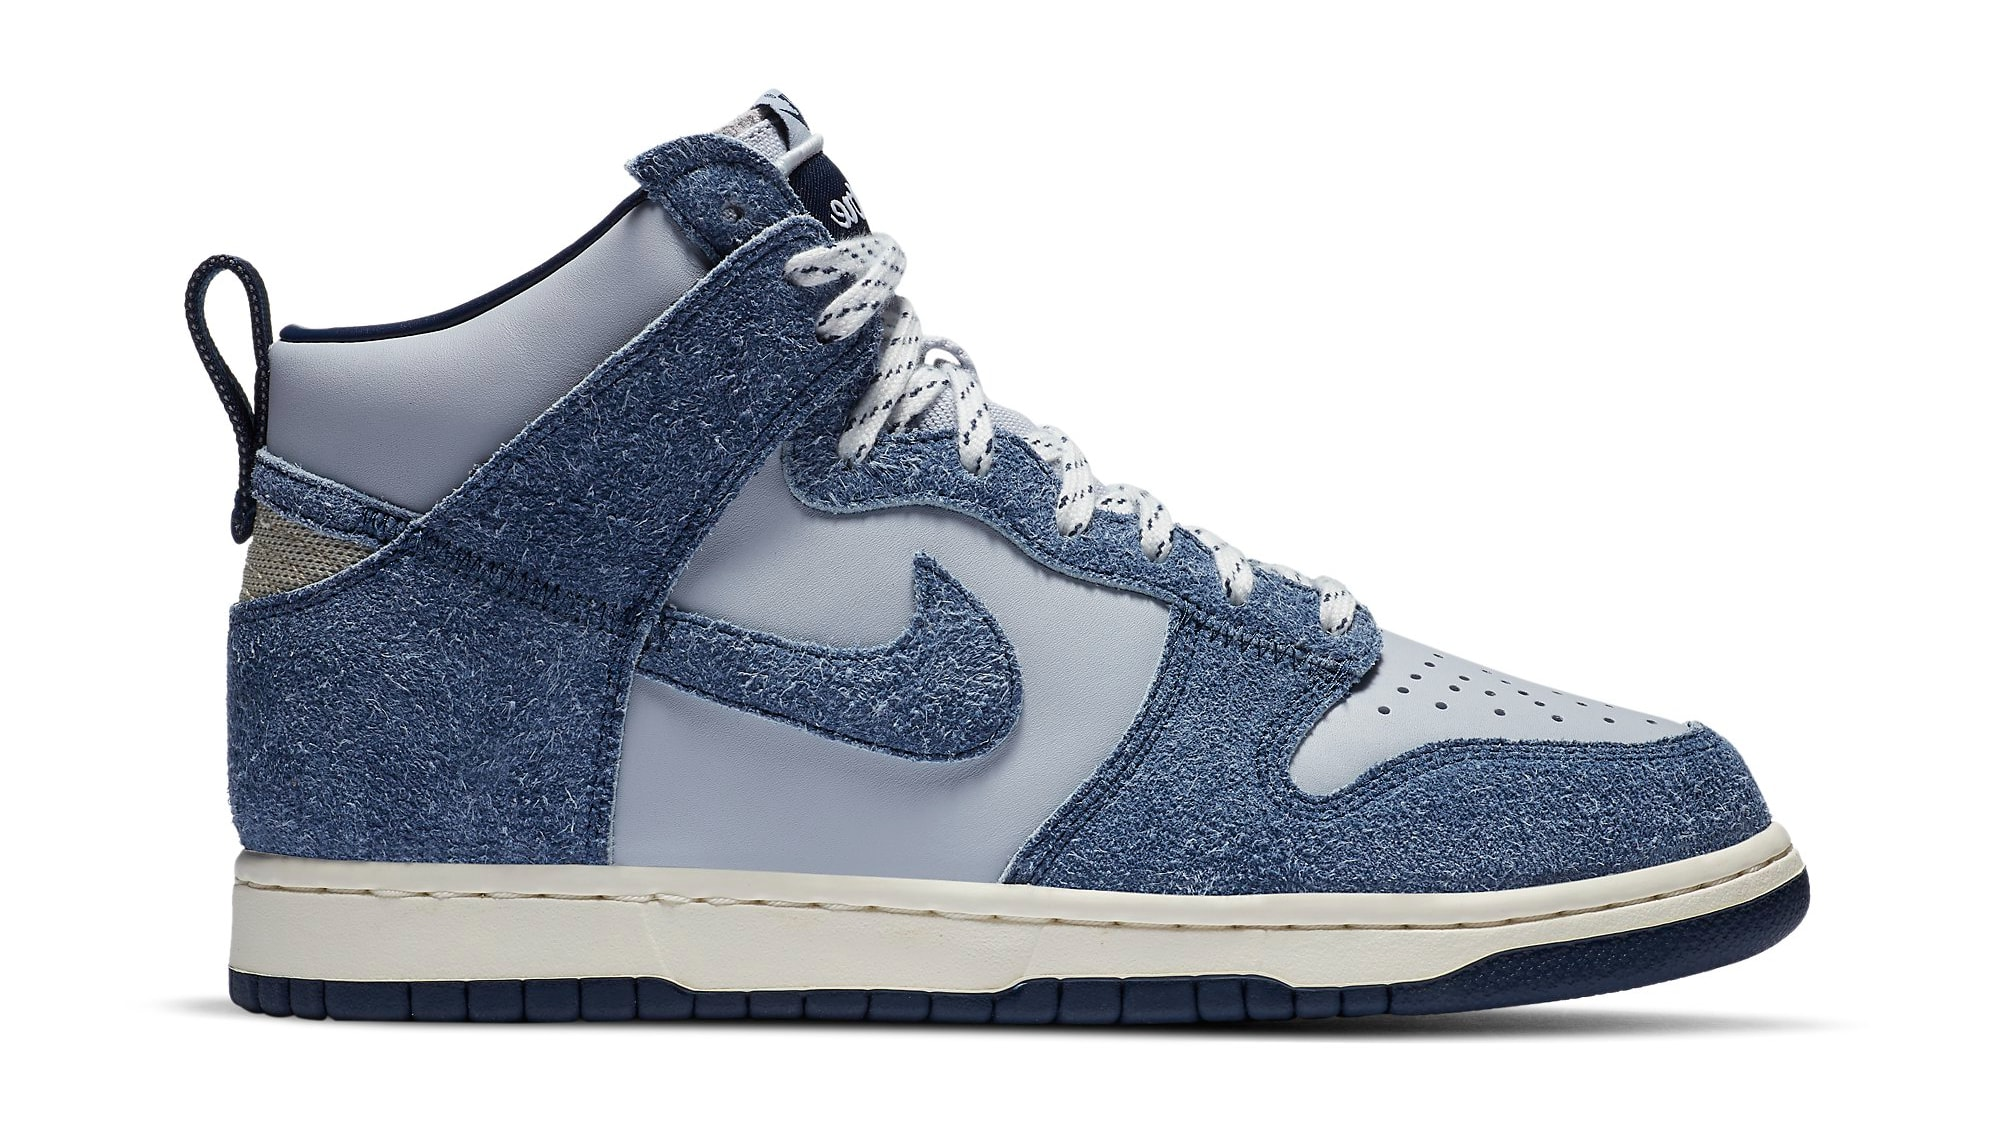 Notre x Nike Dunk High 'Midnight Navy' CW3092-400 Release Date